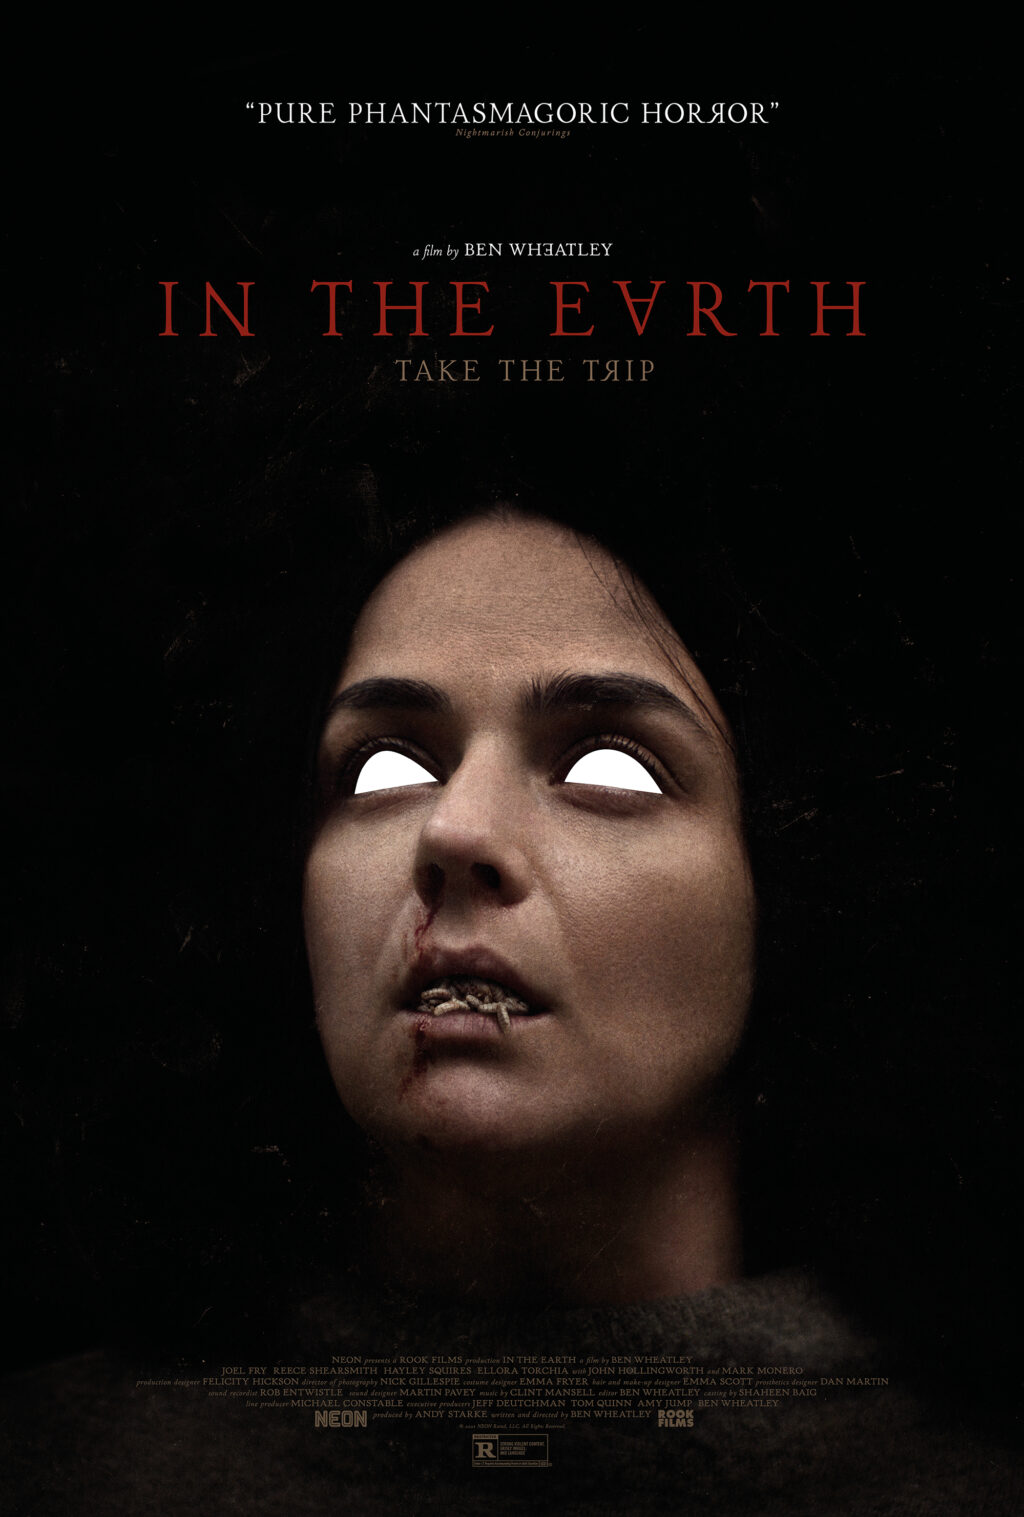 InTheEarth HayleySquires 1024x1517 - 3 New IN THE EARTH Posters Include Rave Responses